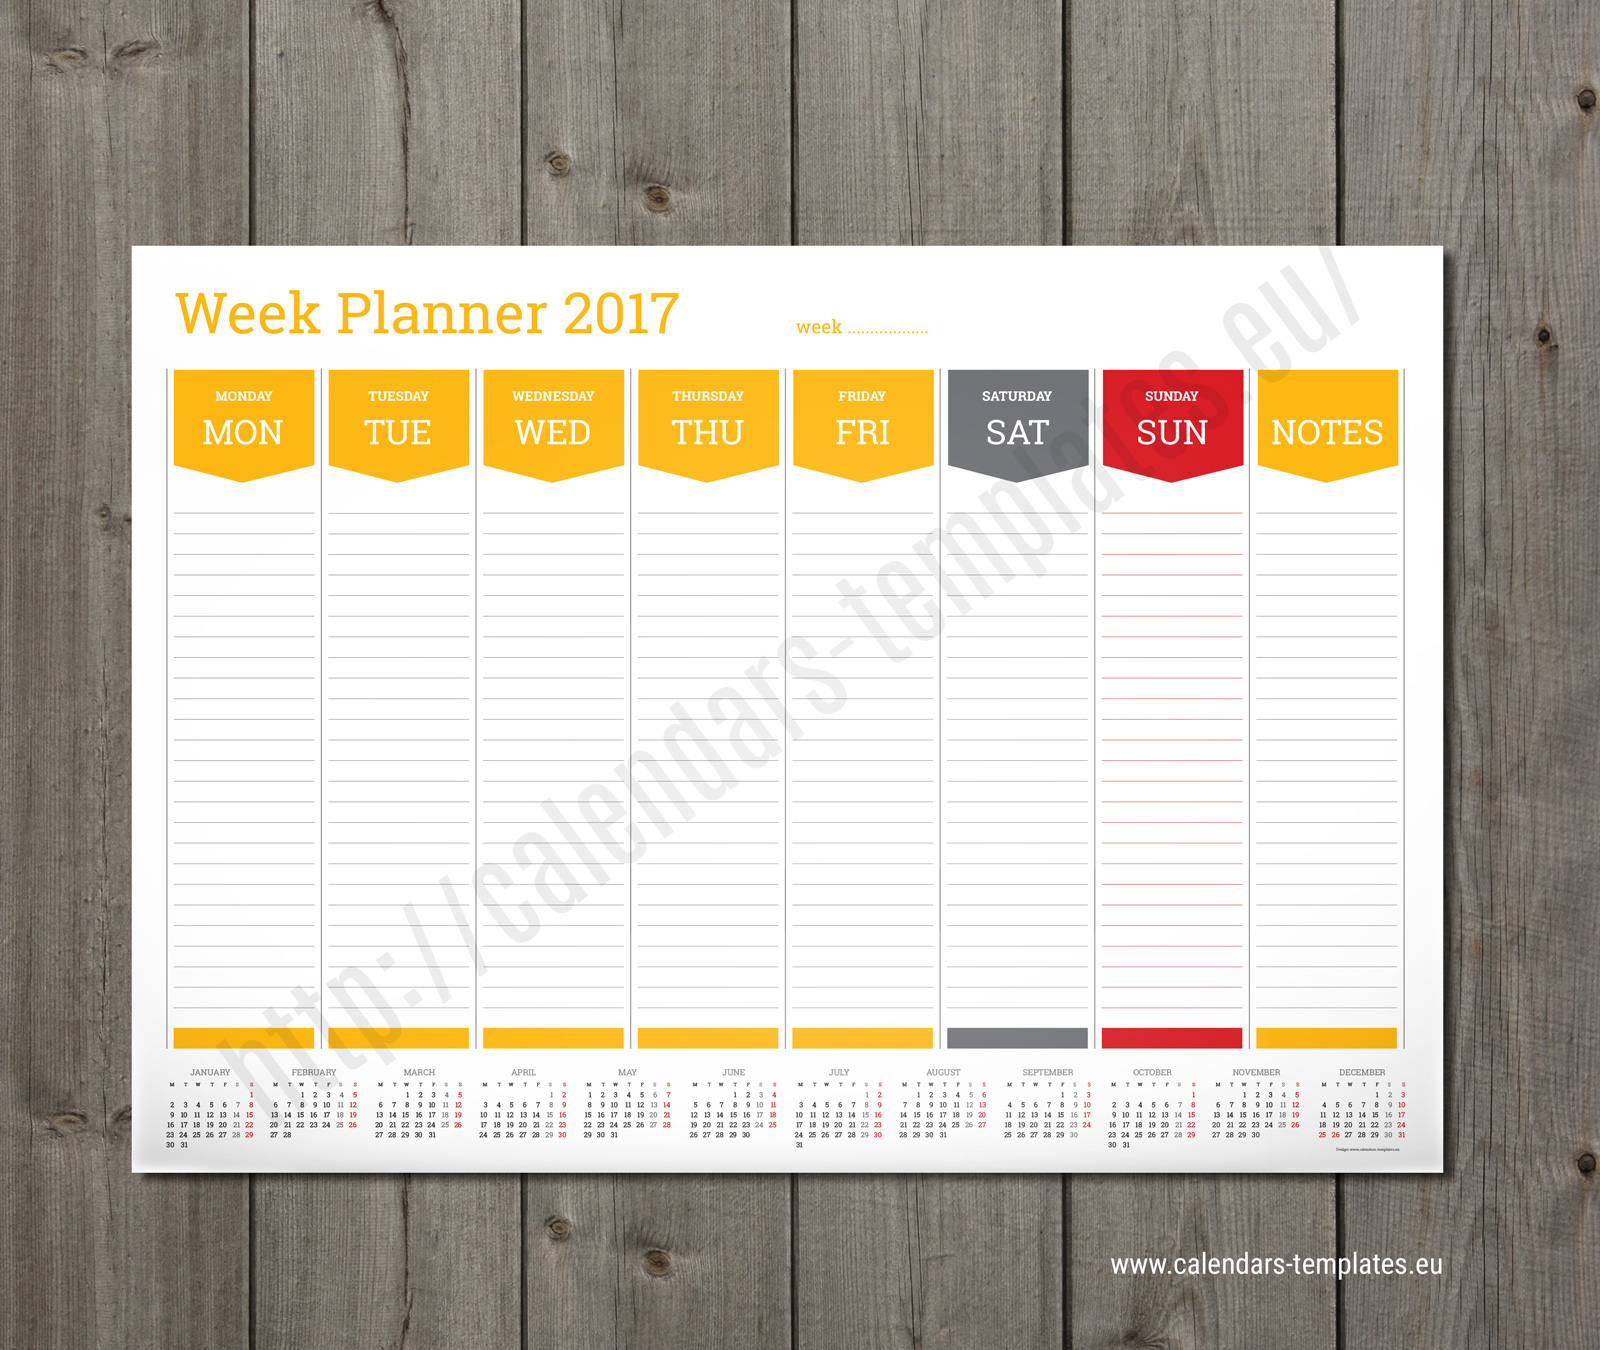 Daily Weekly Planner Printable PTW1 Template – Weekly Agenda